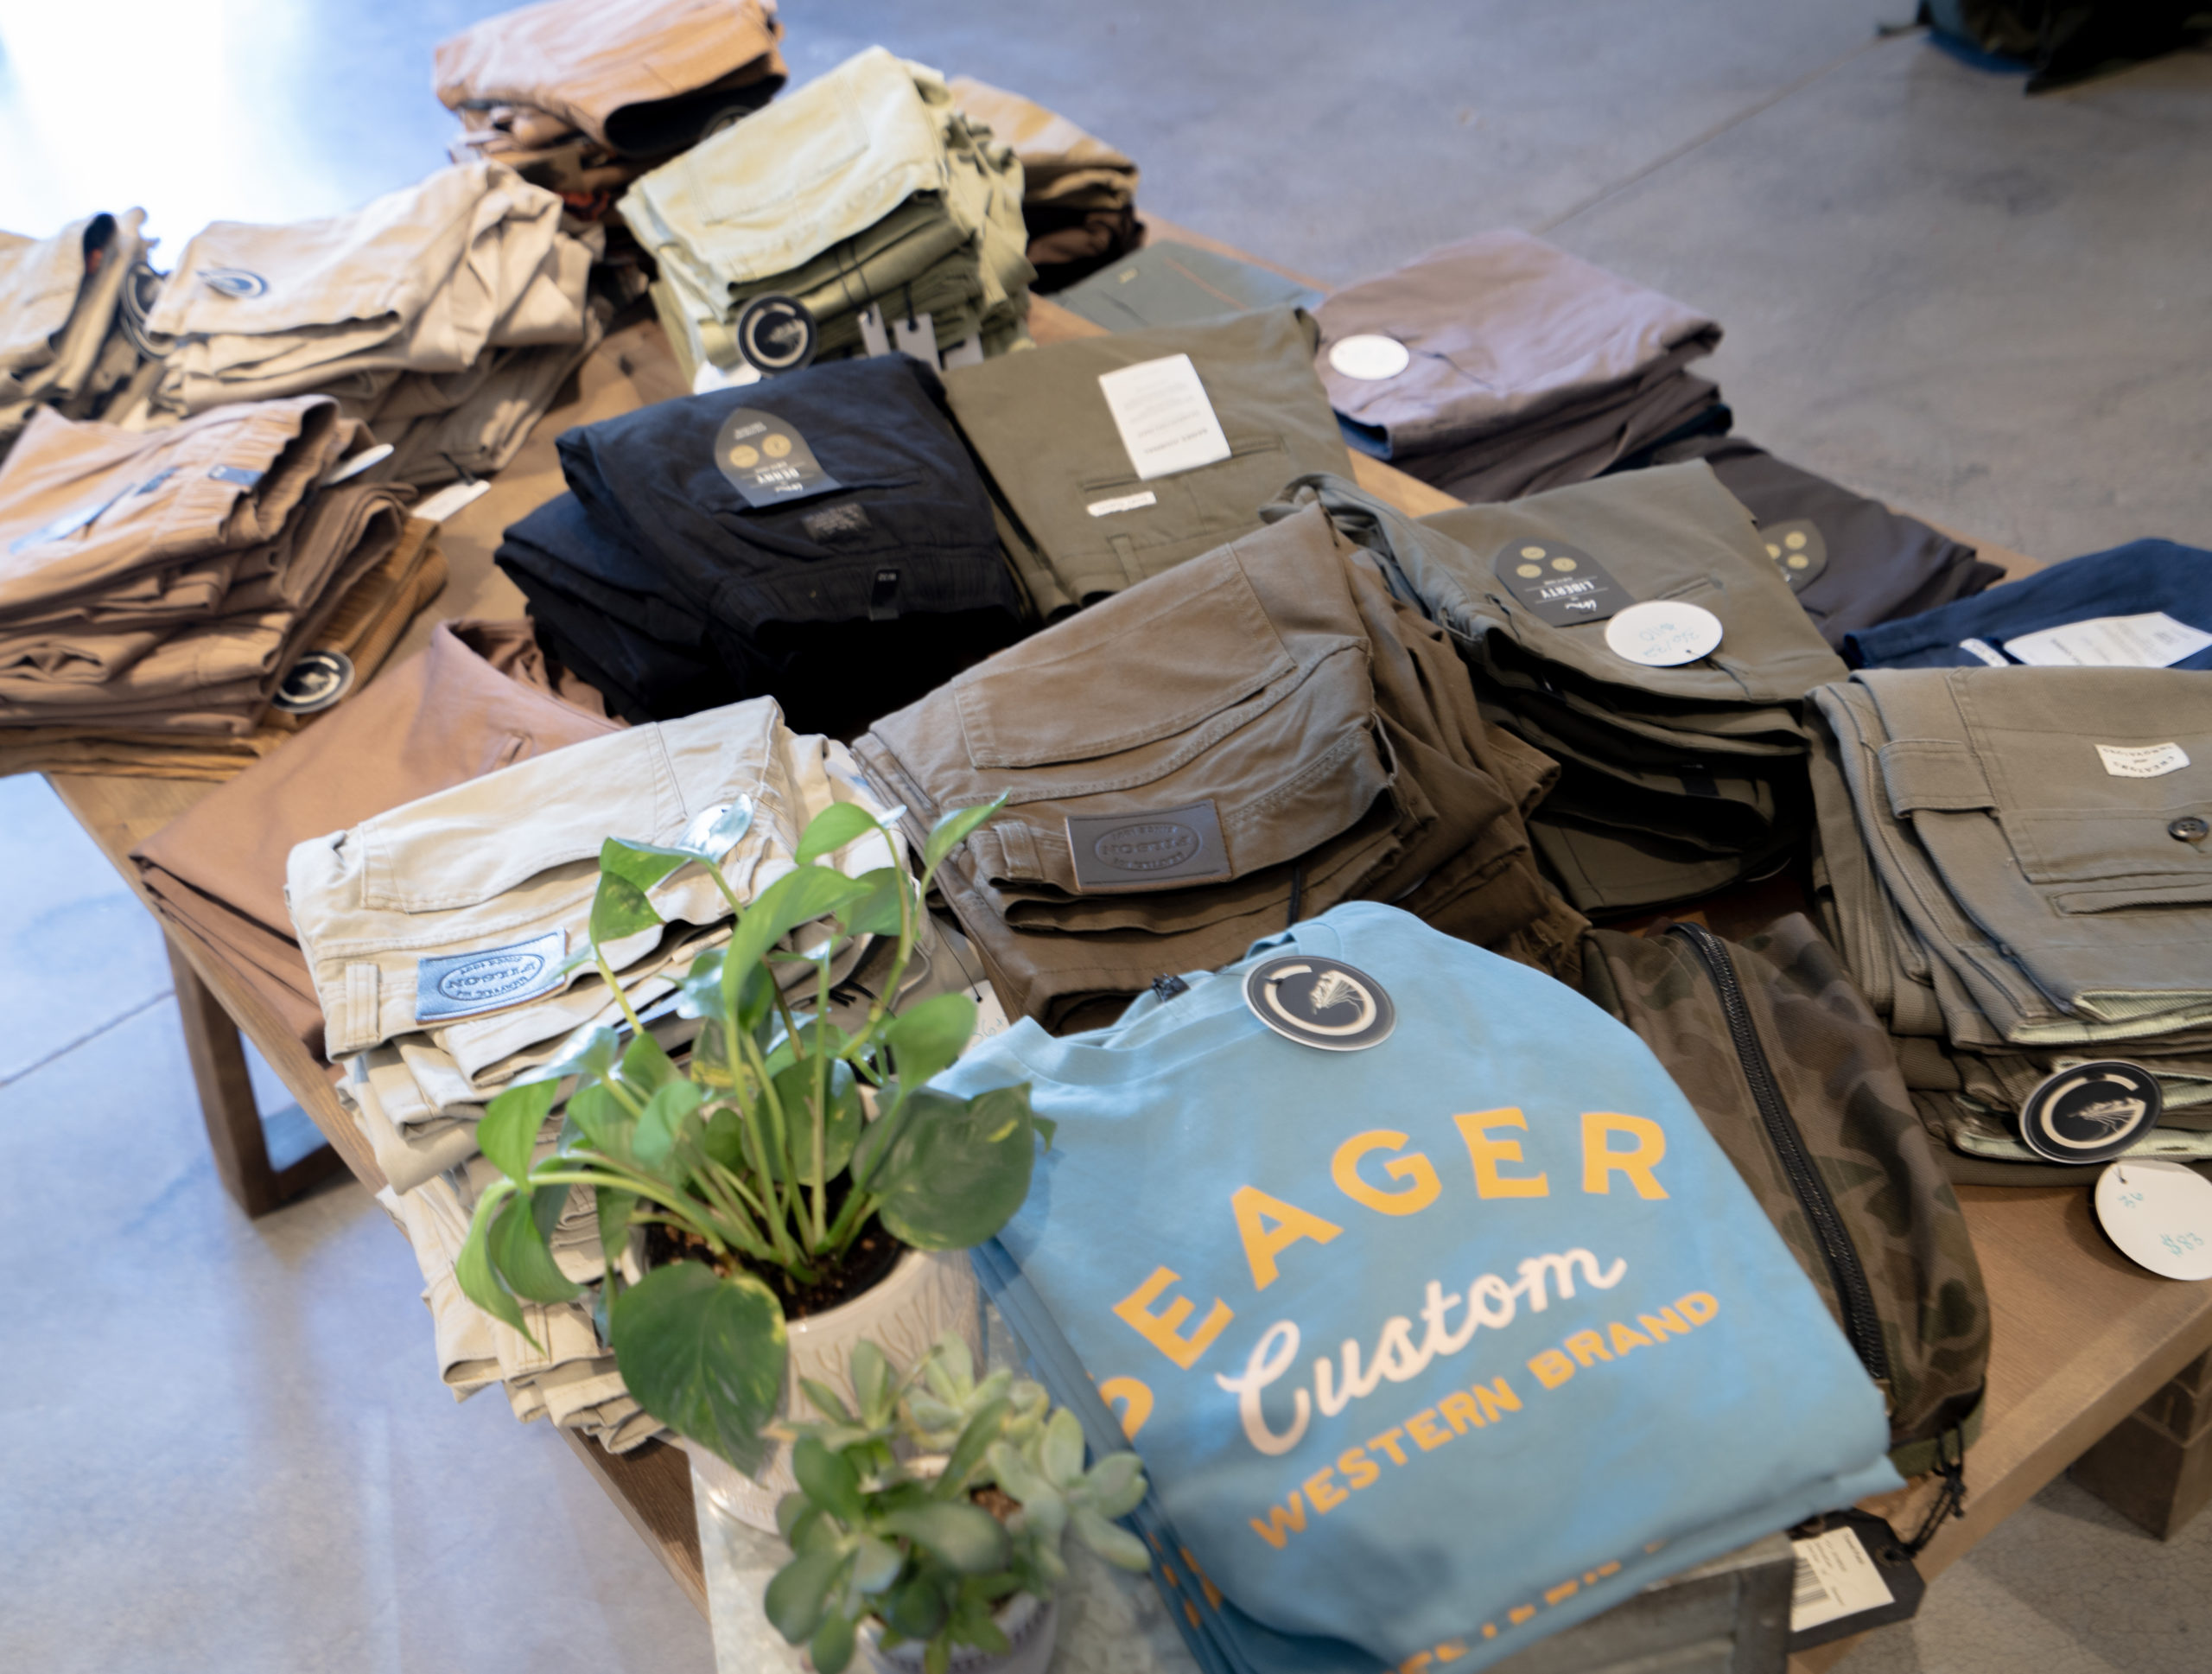 Grizzly Menswear in Truckee